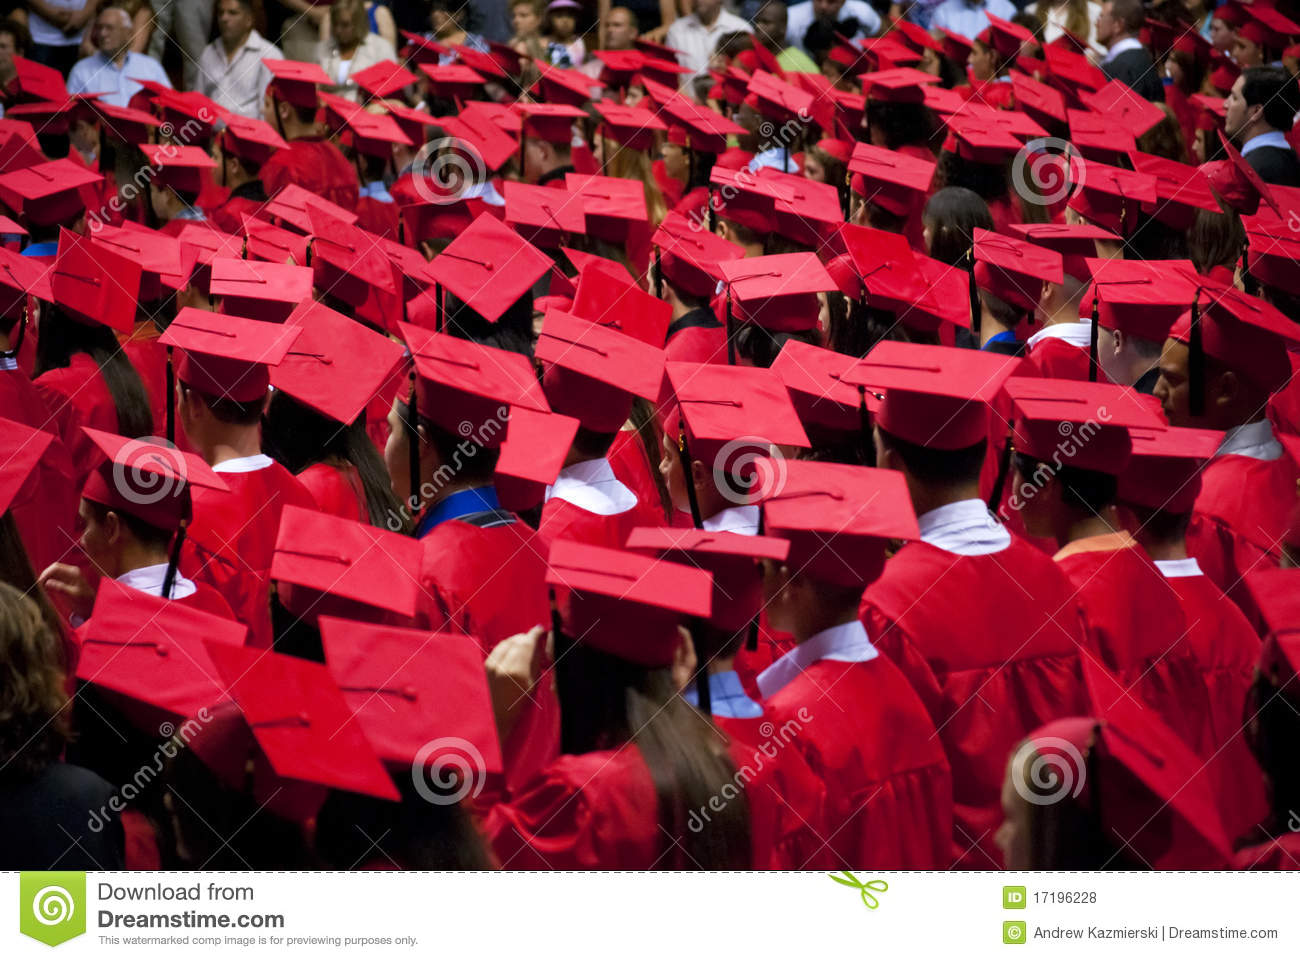 Graduates Red Cap And Gown Editorial Stock Photo - Image: 17196228